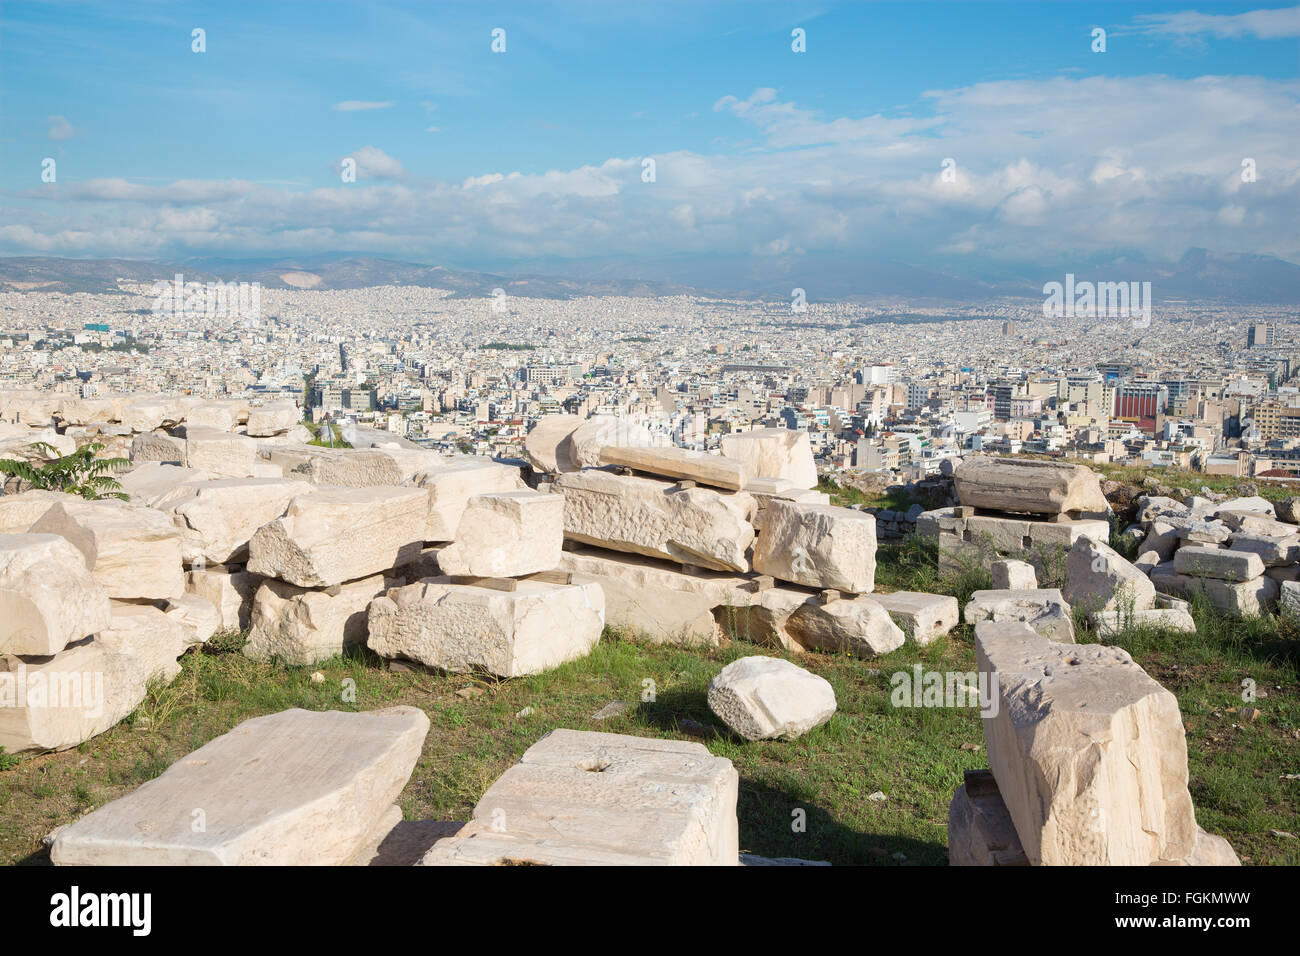 Athens - The outlook from Acropolis to north part of the city and the ruins. - Stock Image